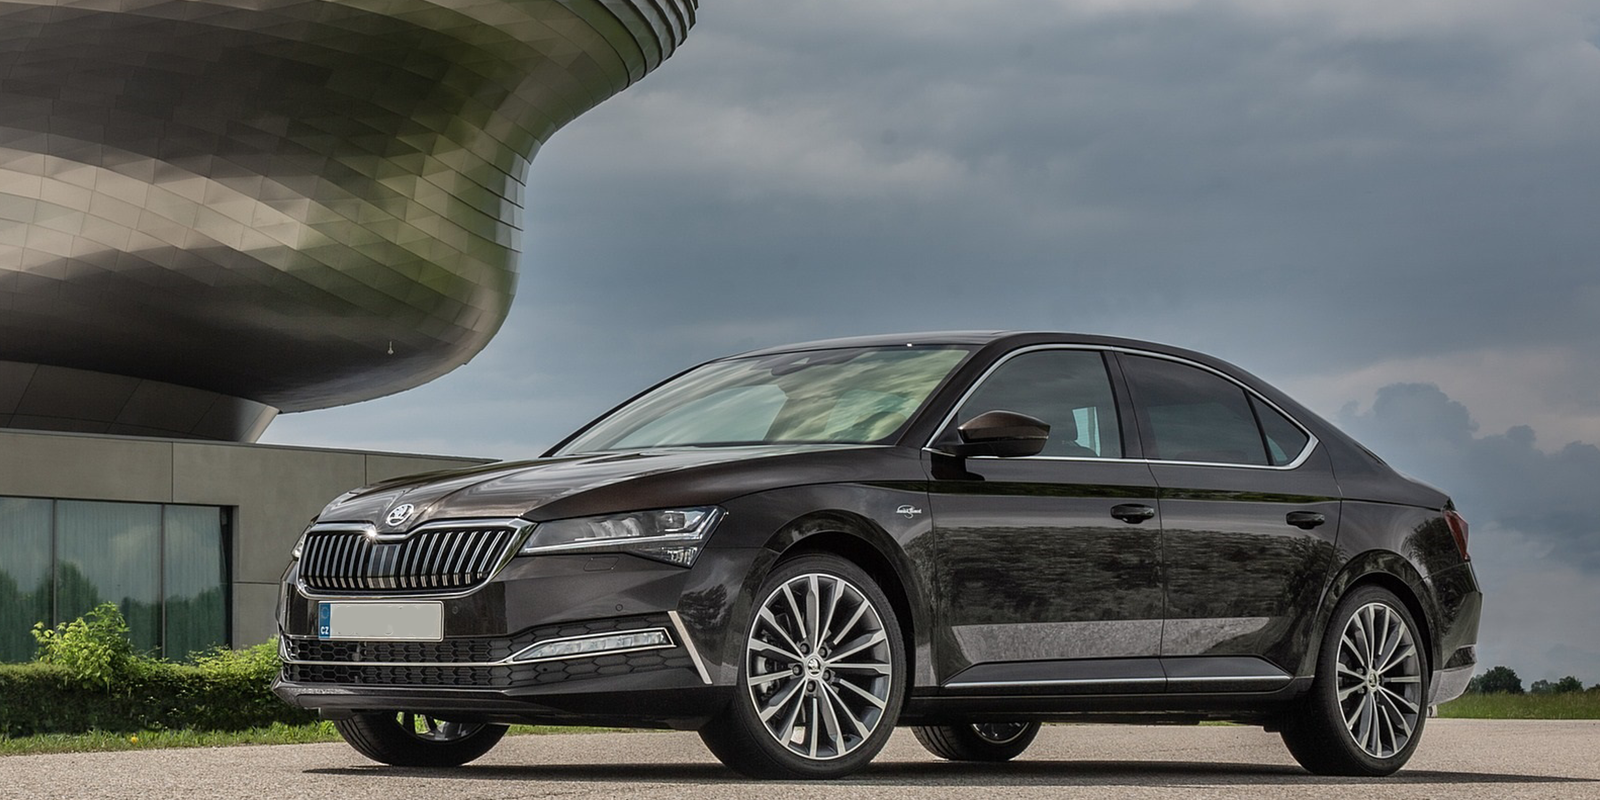 ŠKODA SUPERB 3